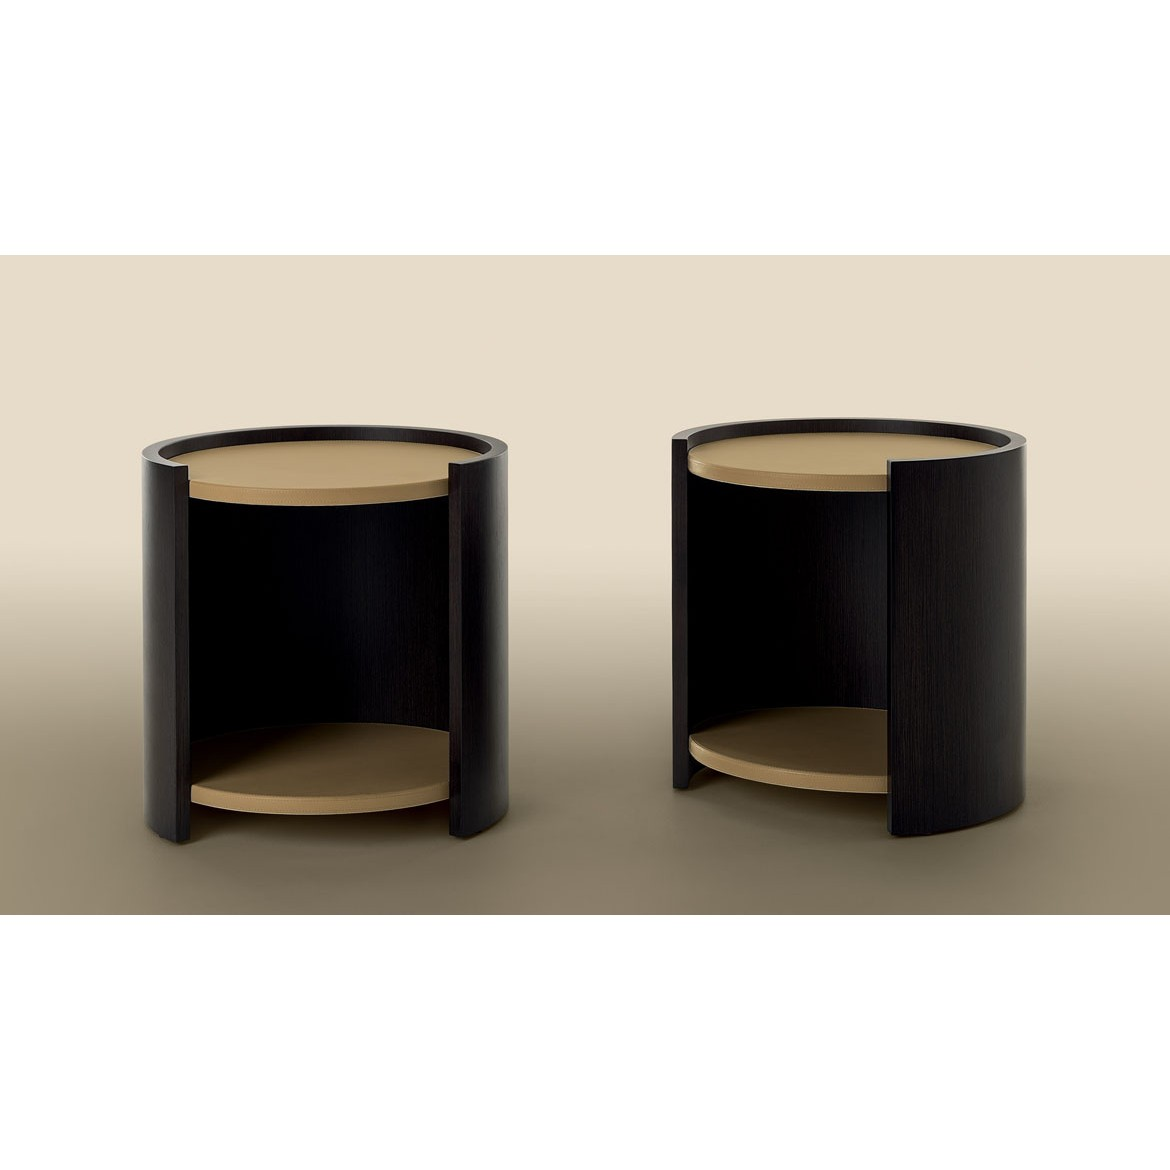 Тумба Isla Bedside Table, дизайн Trussardi Casa